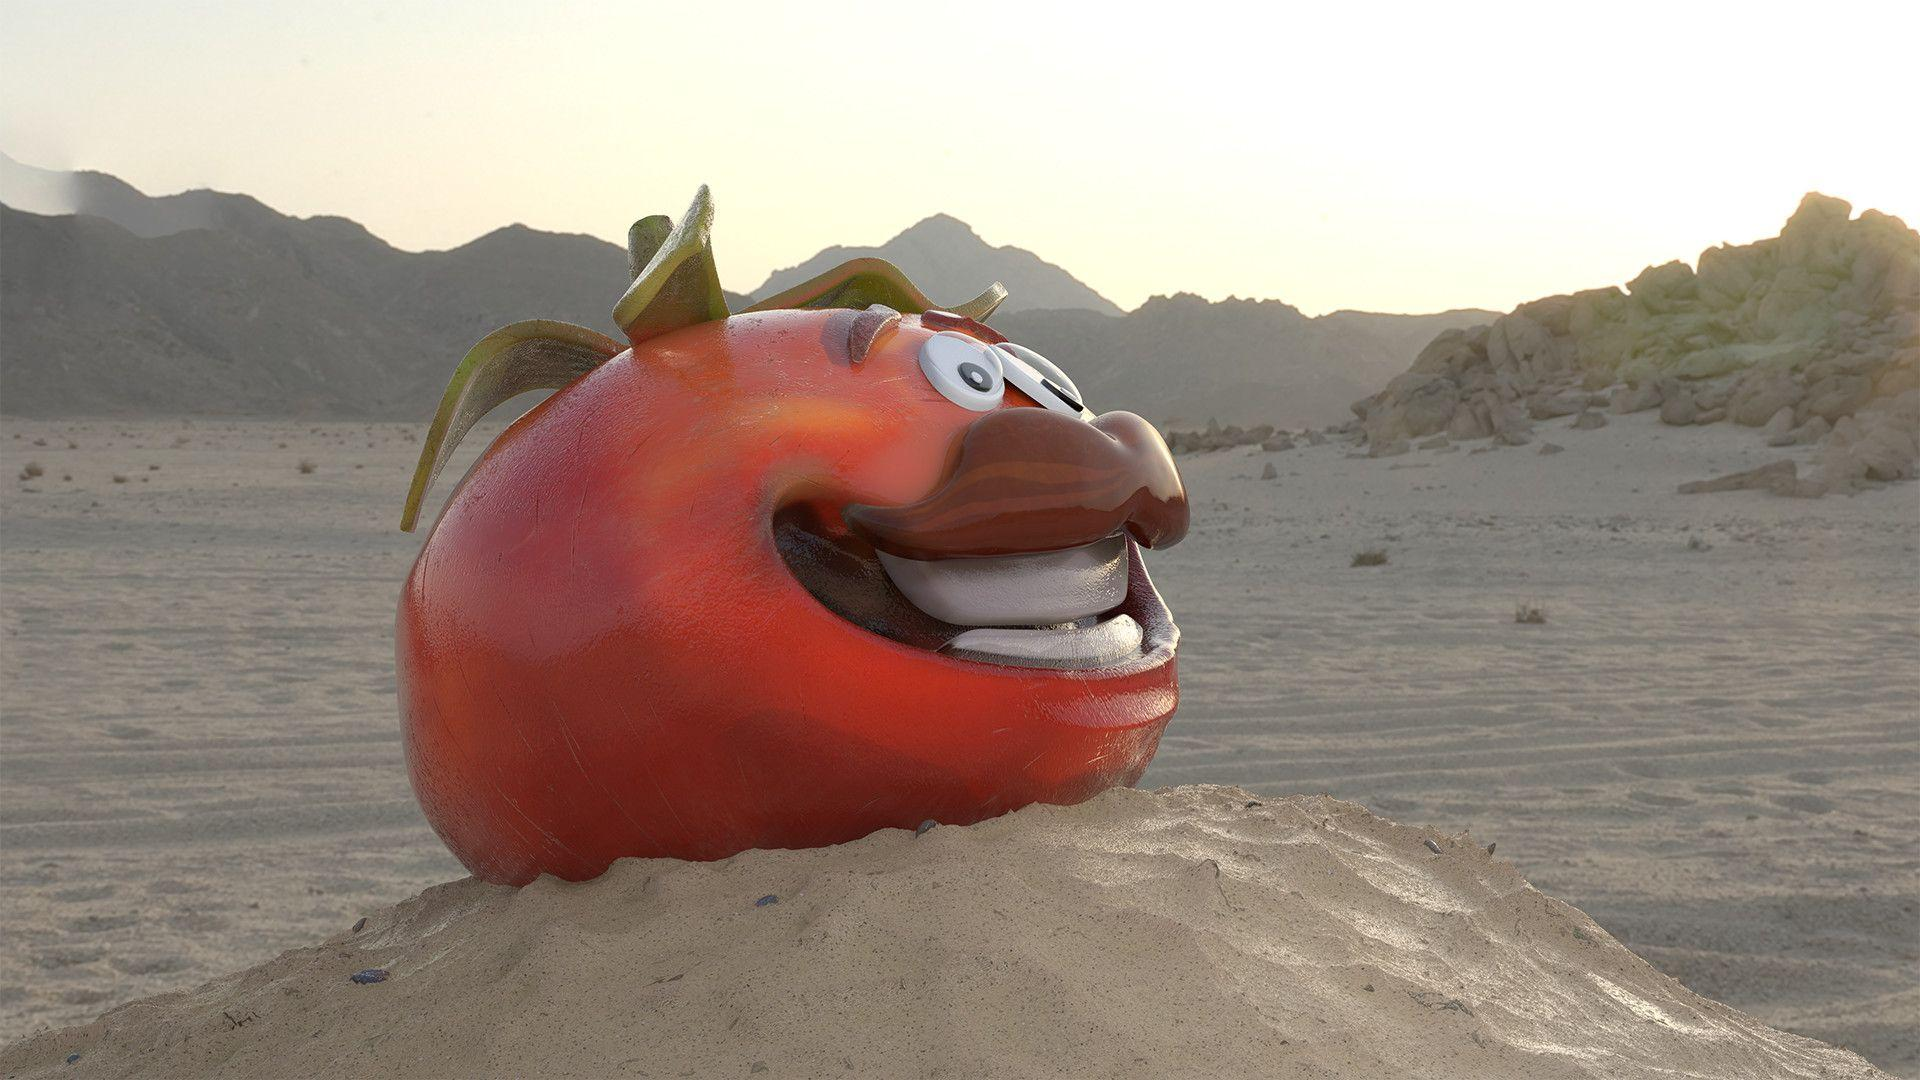 ArtStation - Tomato Head Found In the Desert - Fortnite, Roee ...